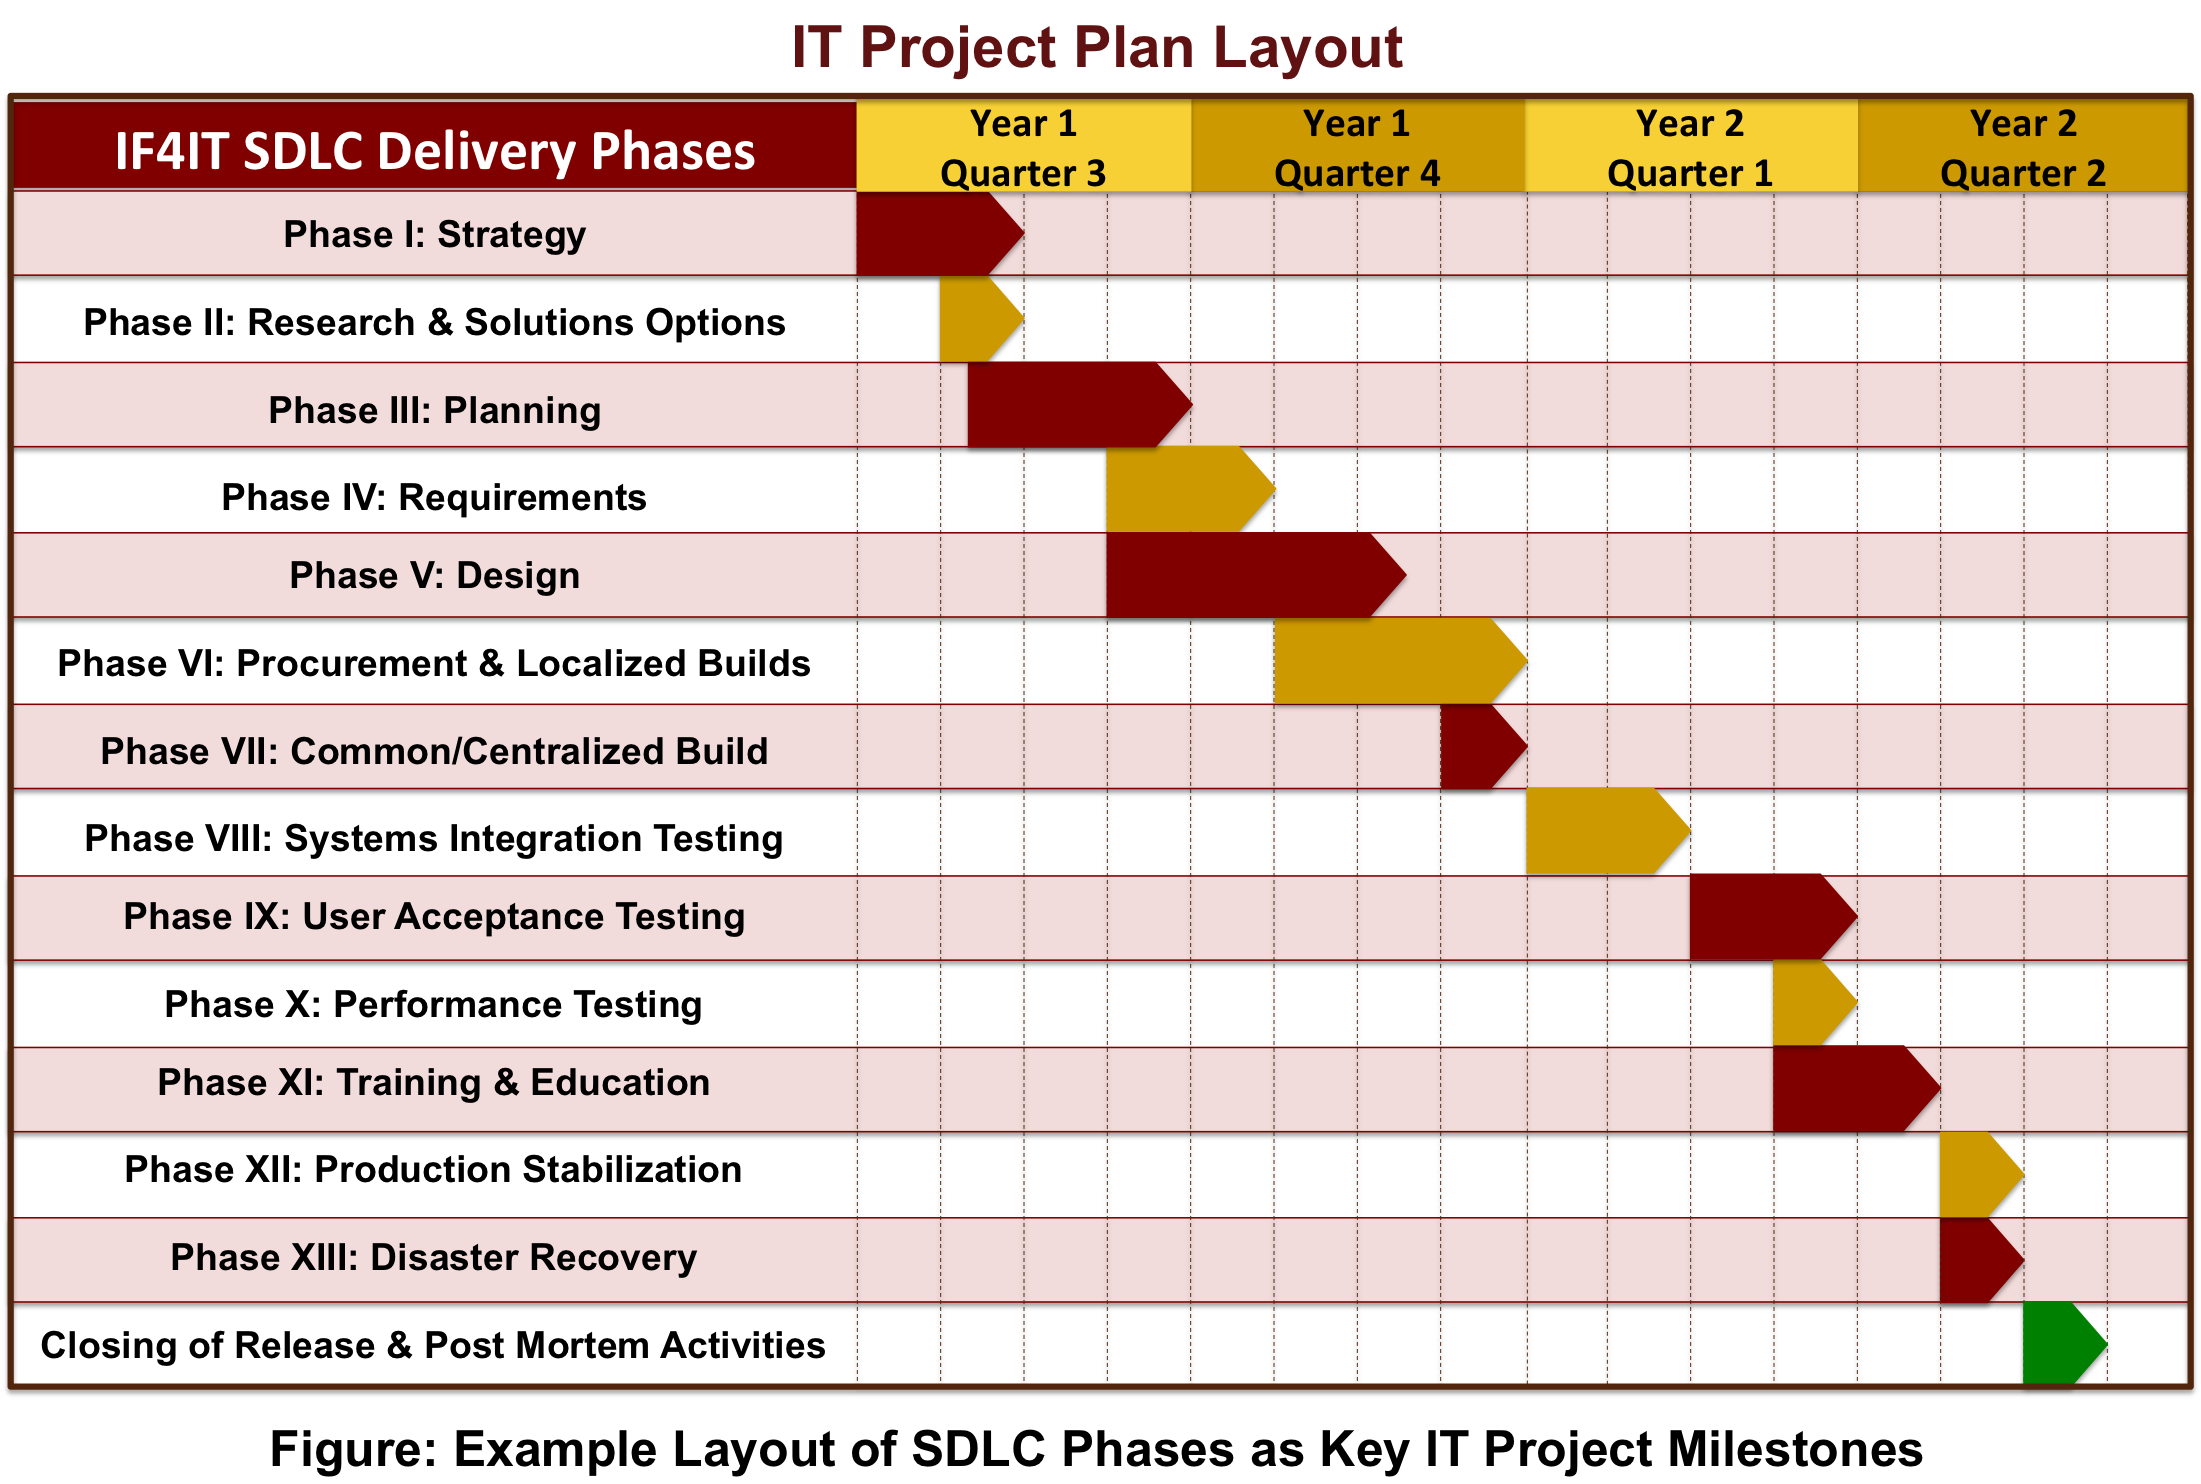 sdlc based it project plan layout - Sample Project Plan